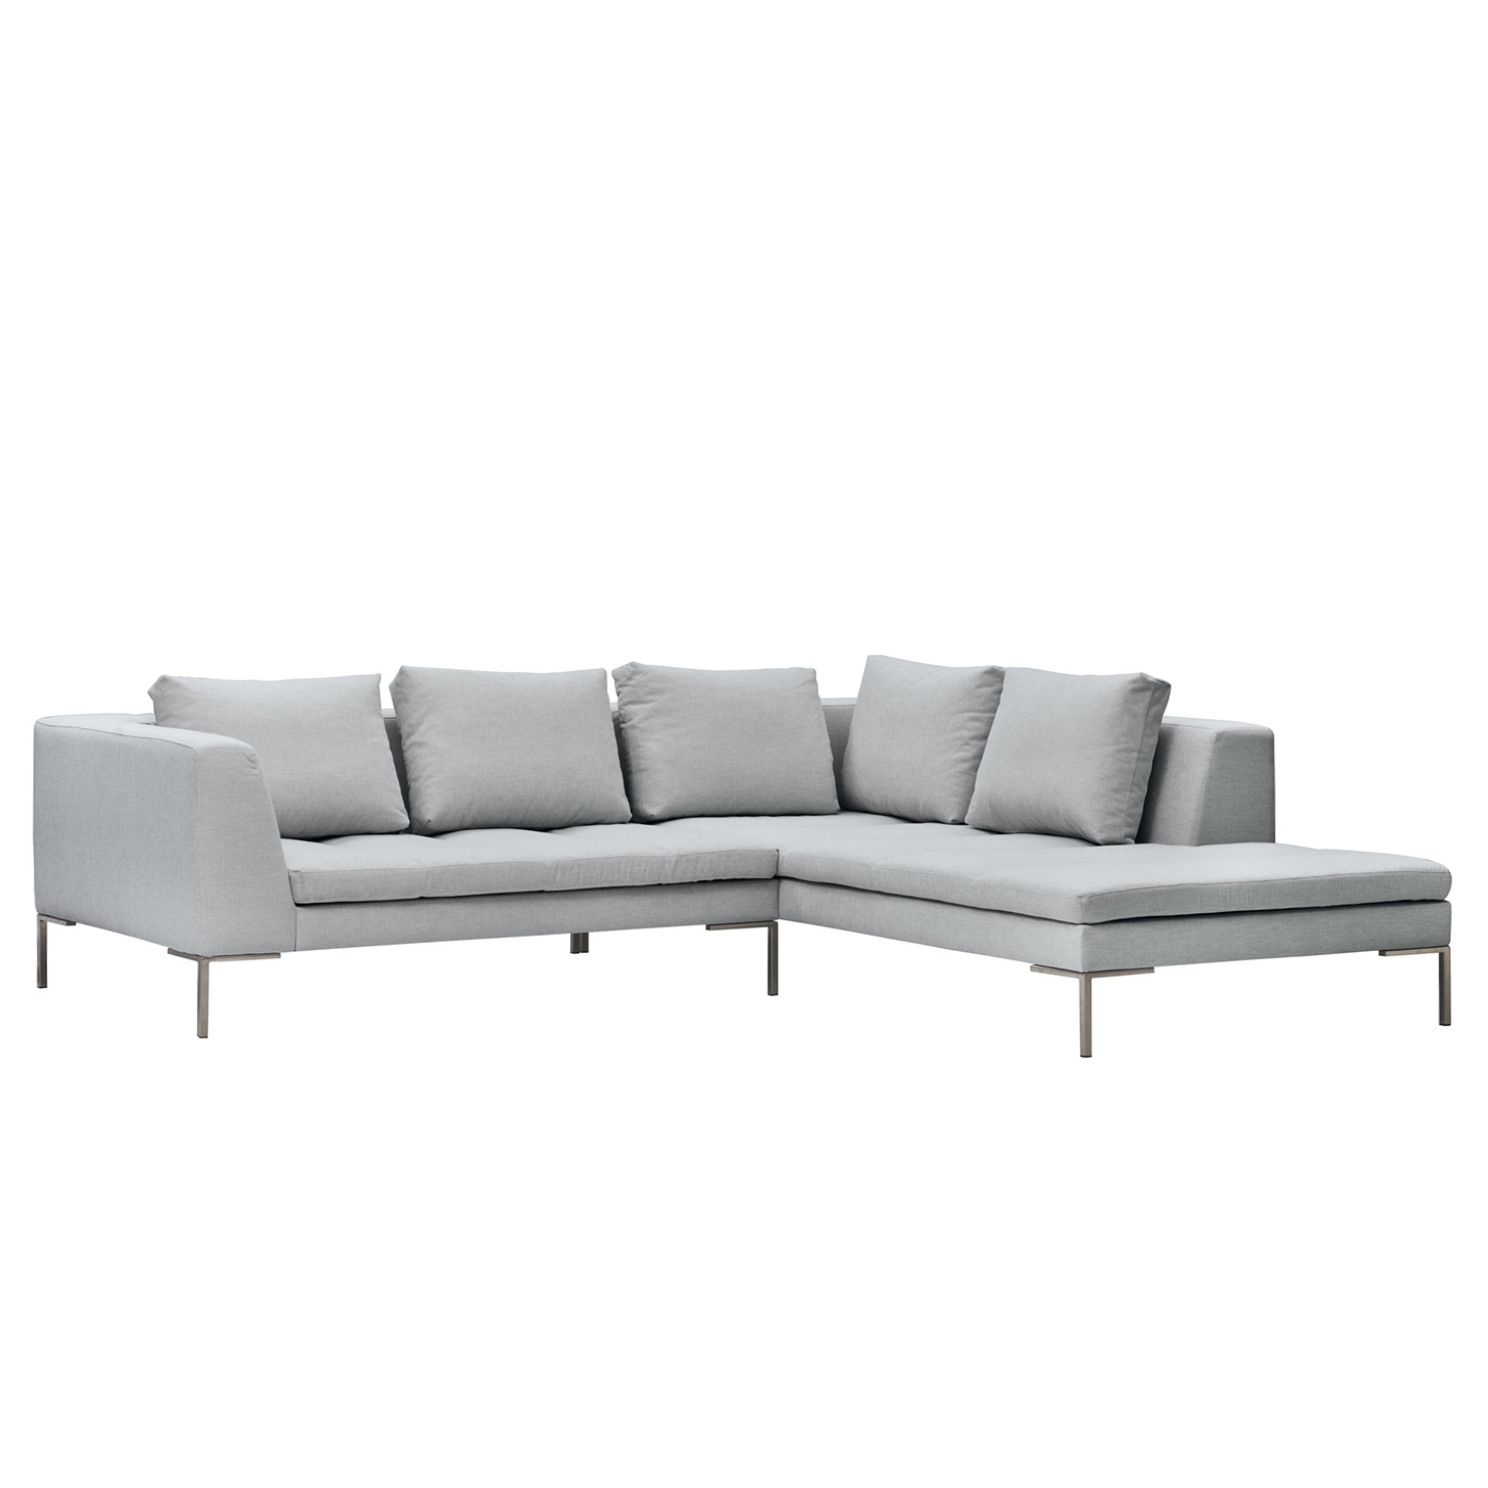 ecksofa madison i webstoff ottomane davorstehend rechts 255 cm stoff anda ii silber. Black Bedroom Furniture Sets. Home Design Ideas